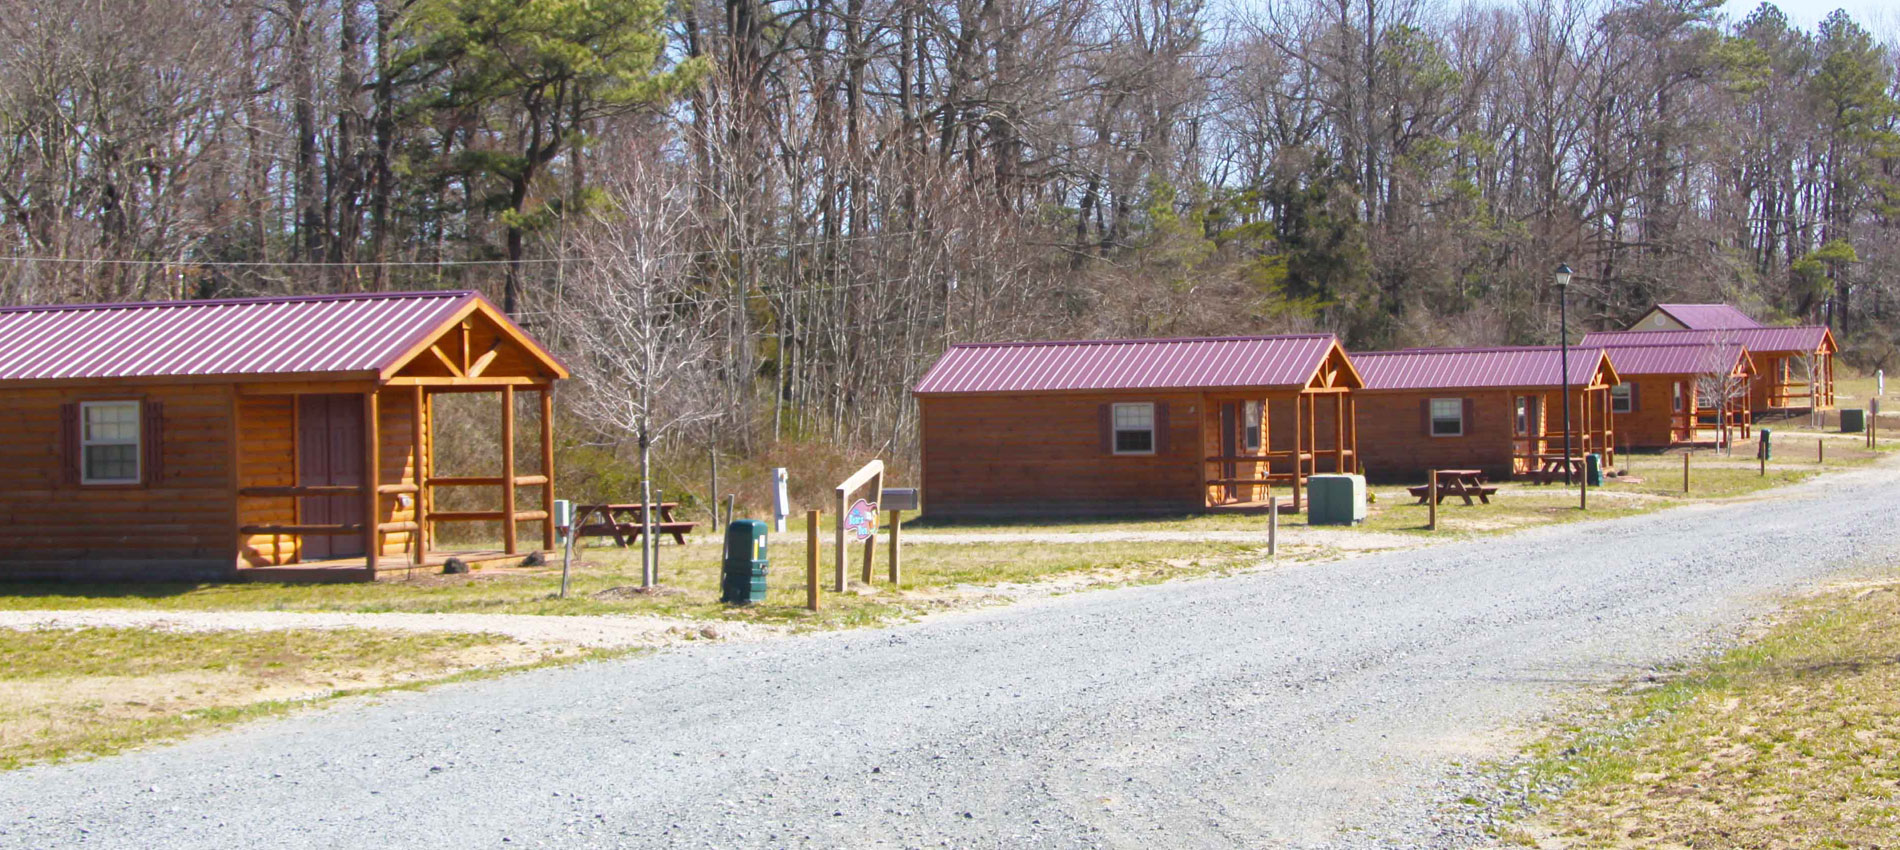 amish log cabins for sale for campground log cabins by zook cabins